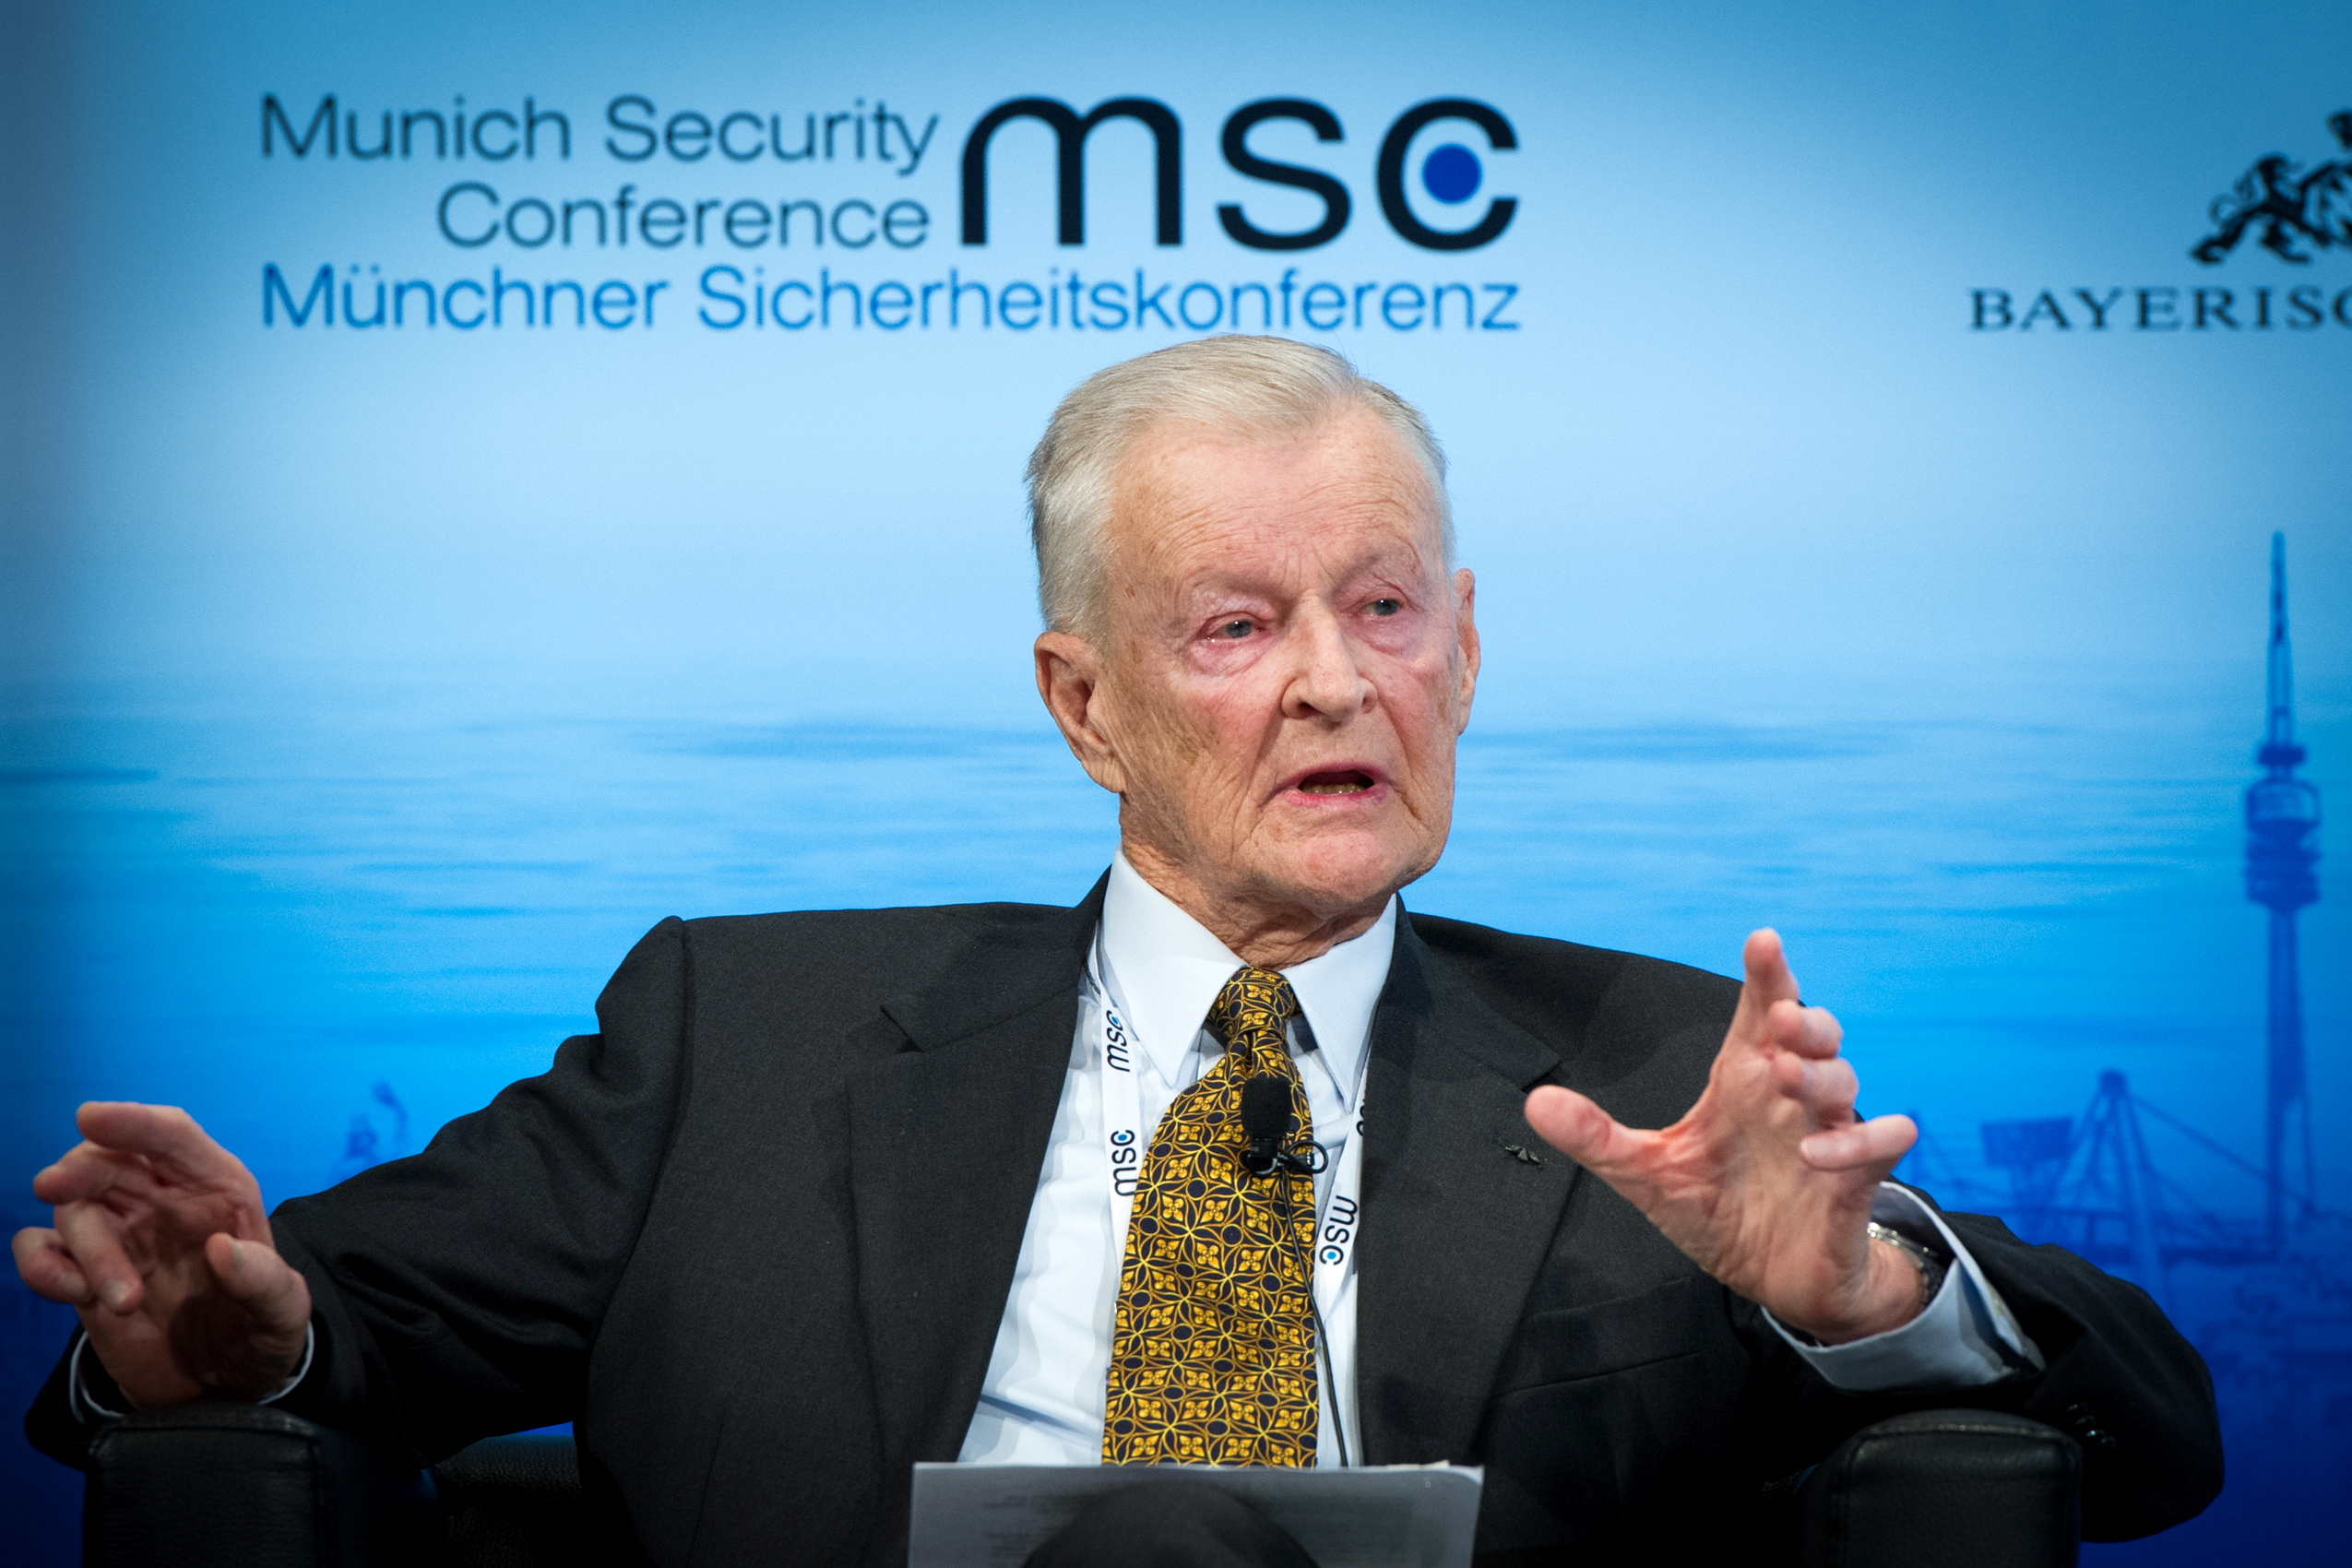 https://upload.wikimedia.org/wikipedia/commons/d/d0/MSC_2014_Brzezinski_Kleinschmidt_MSC2014.jpg